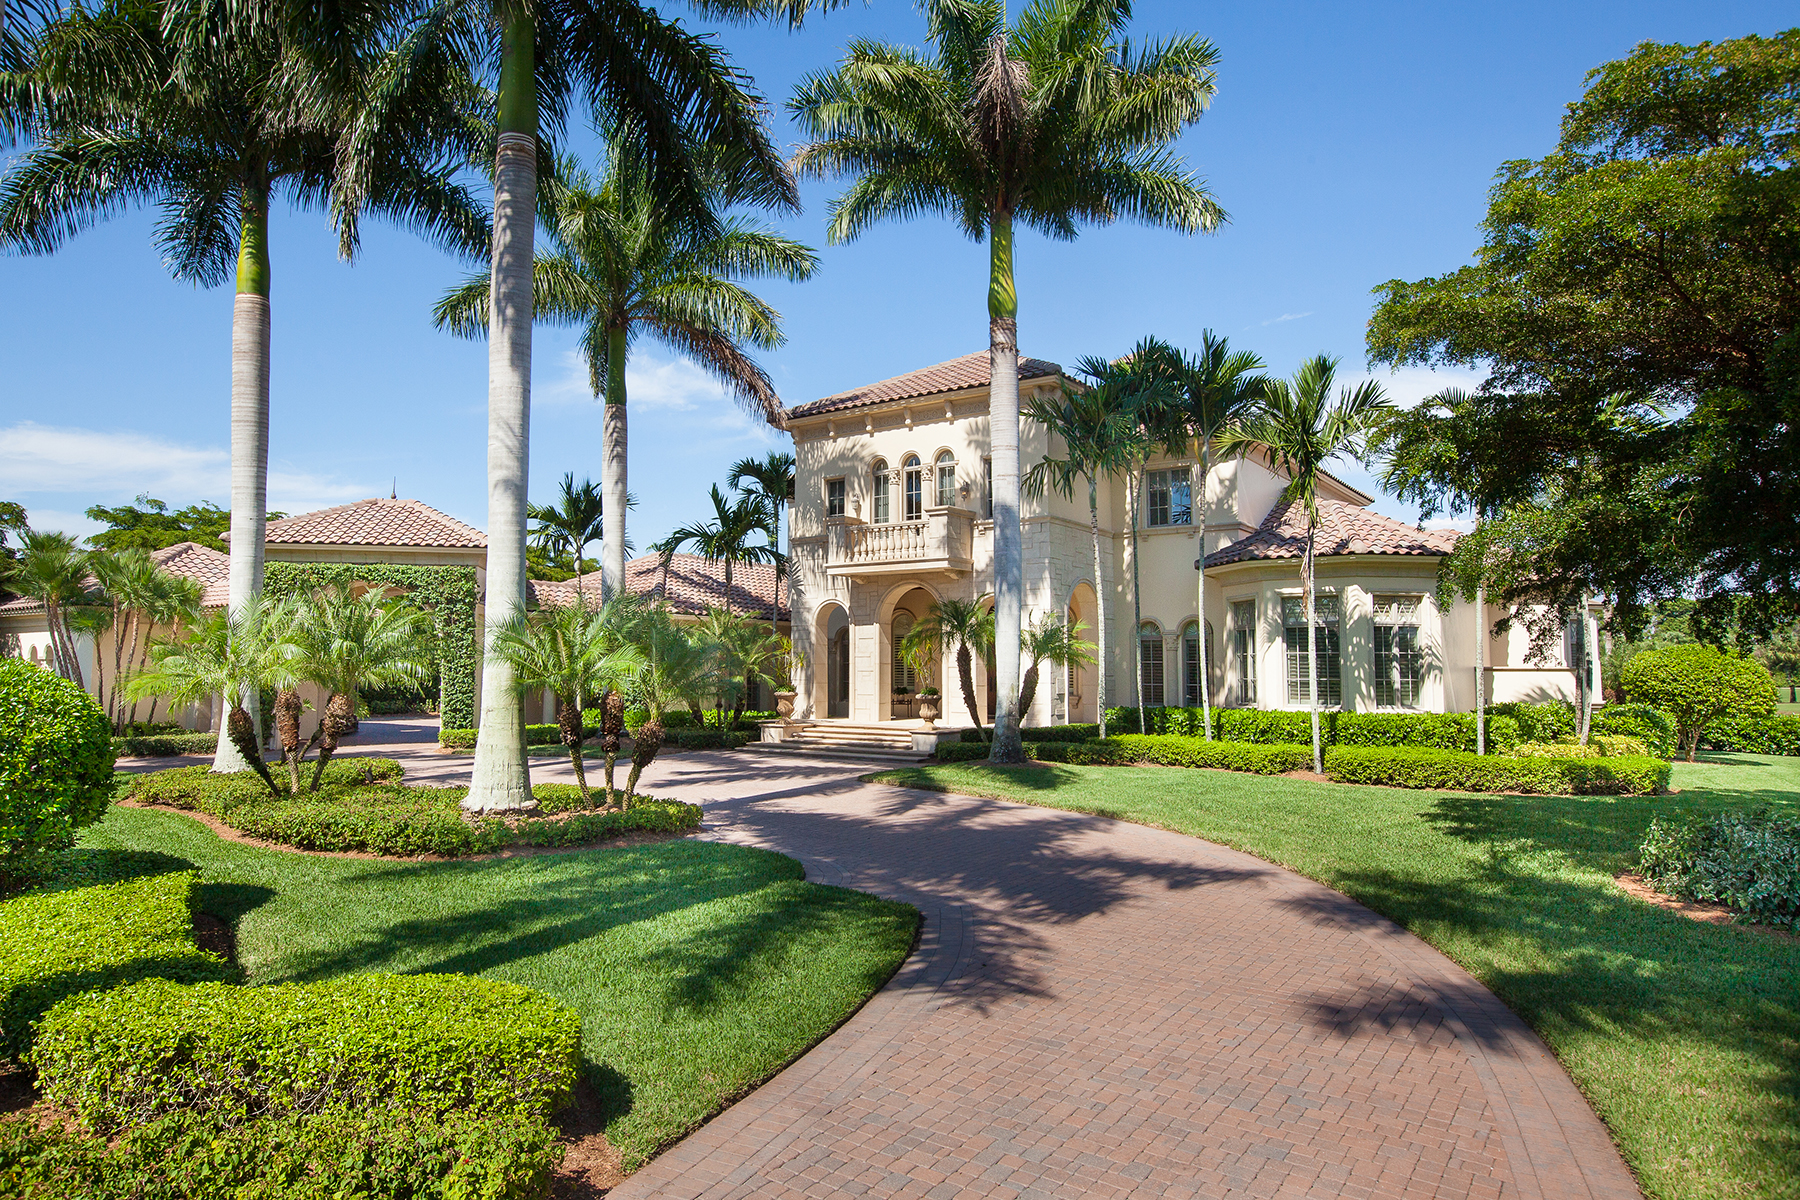 Villa per Vendita alle ore PELICAN MARSH - ESTATES AT BAY COLONY GOLF CLUB 9751 Bentgrass Naples, Florida 34108 Stati Uniti